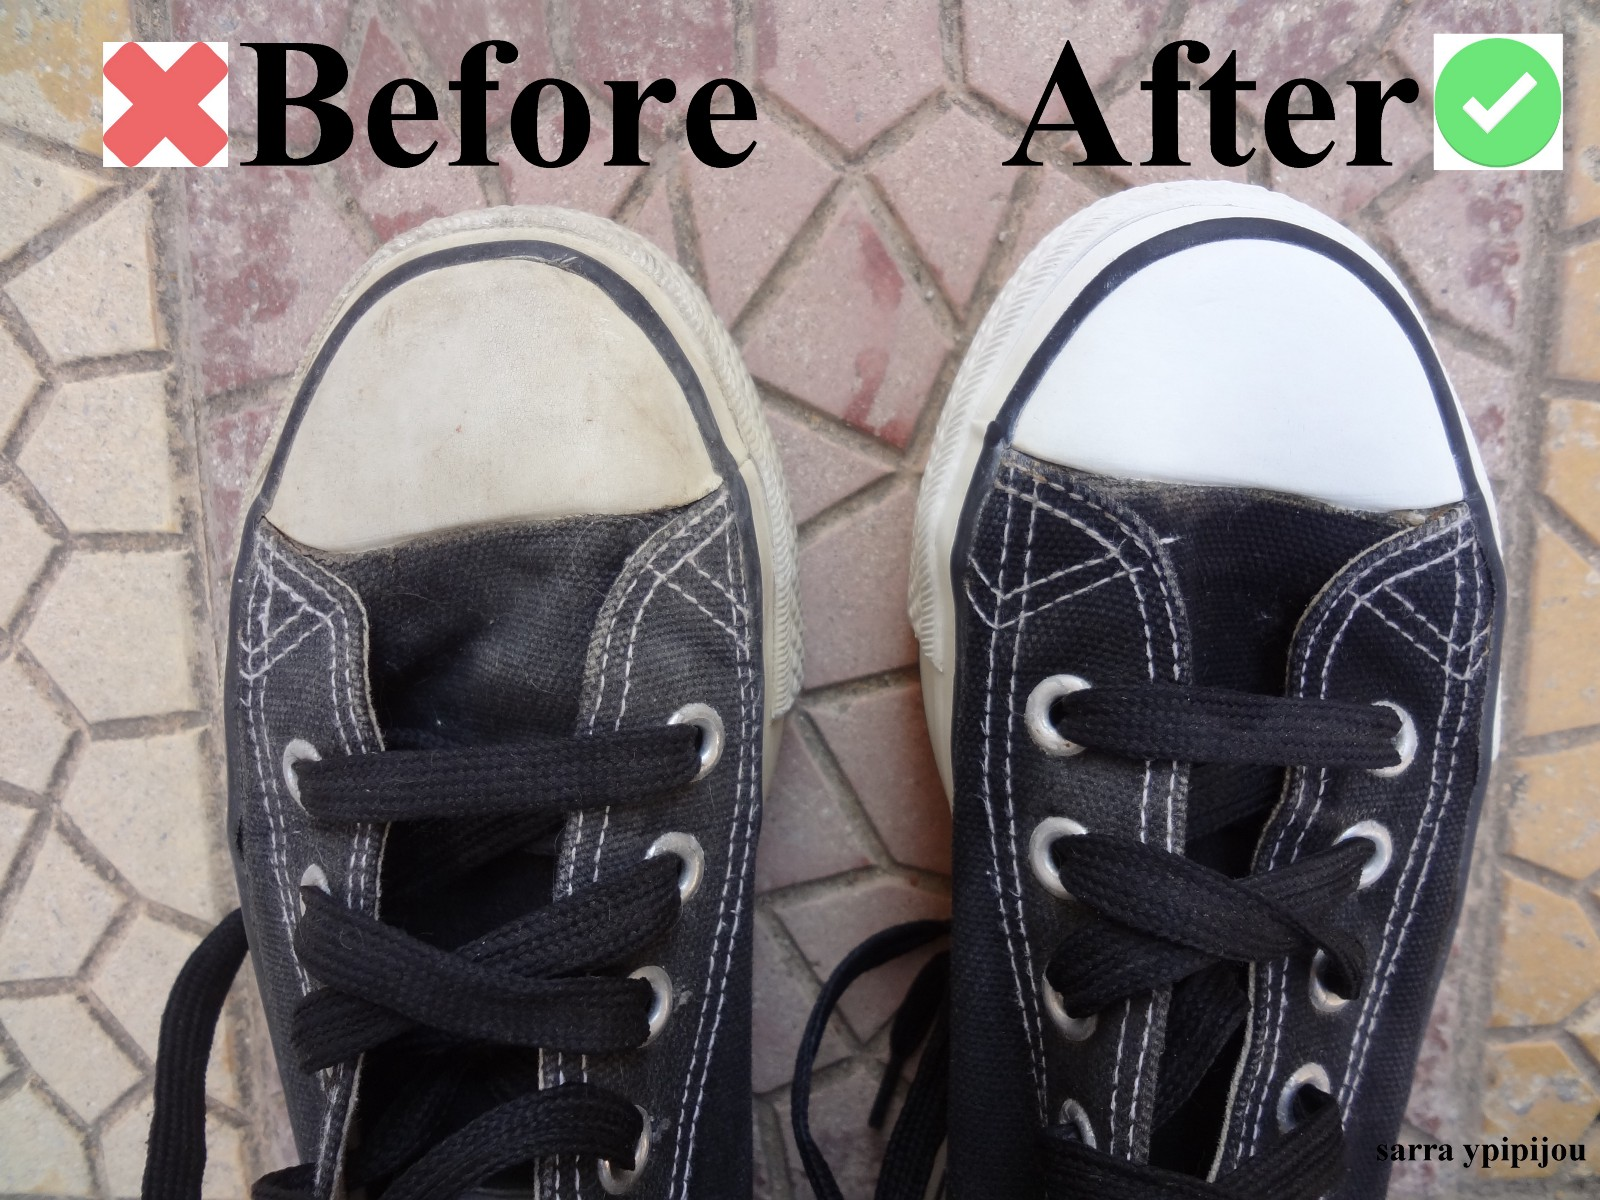 c104e58ac02d How To Clean Converse Sneakers When They Turn Yellow